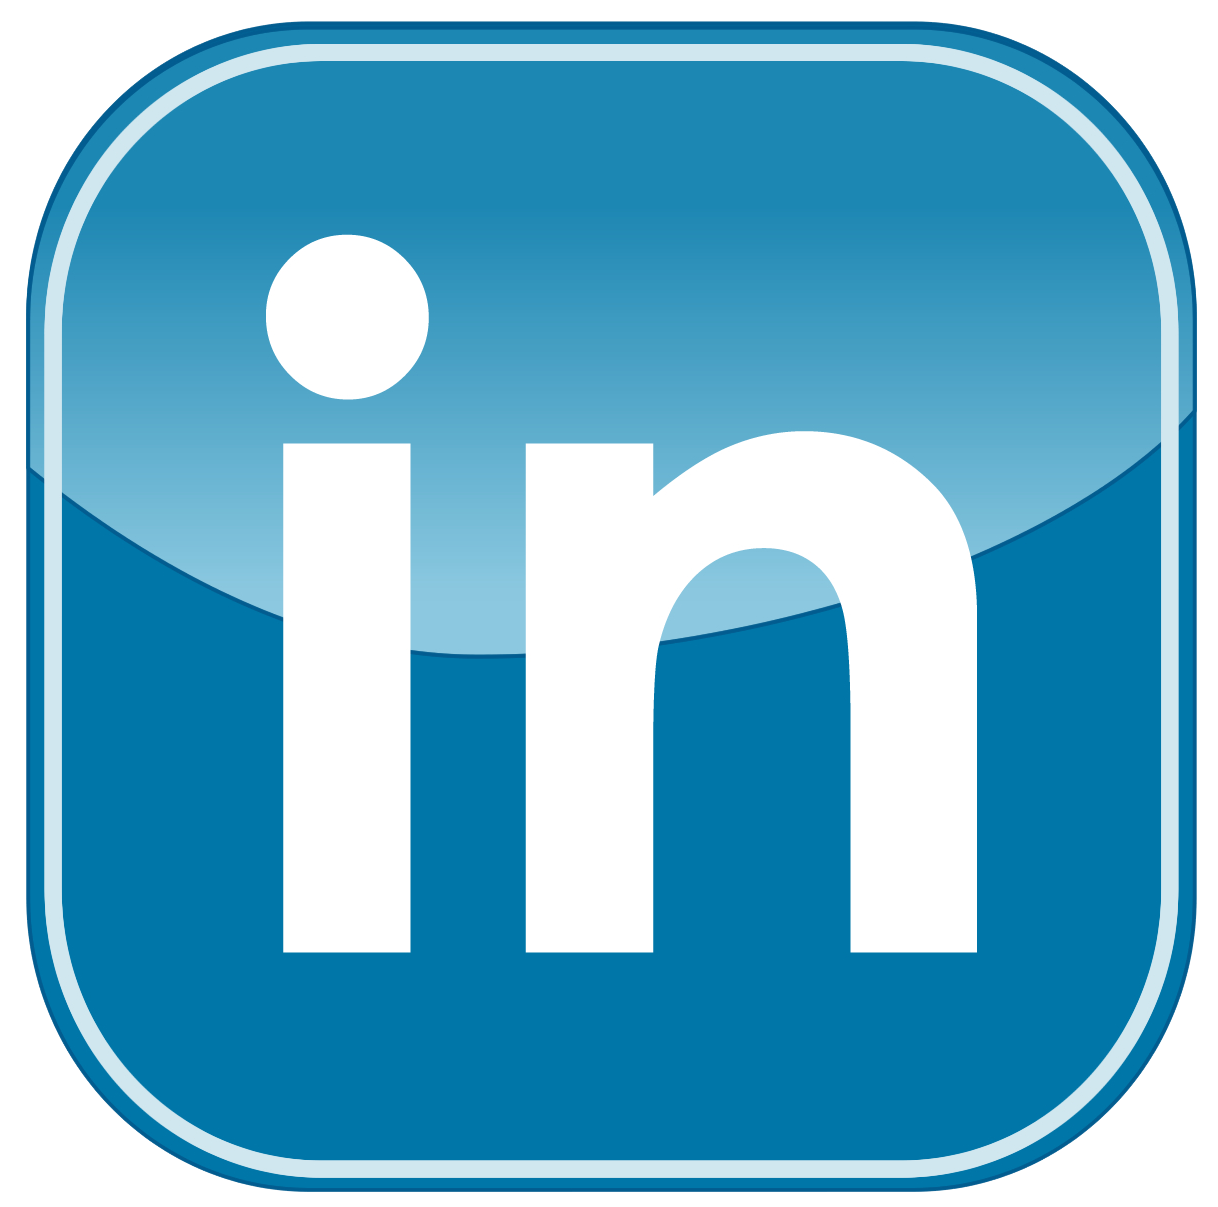 Ric on LinkedIn